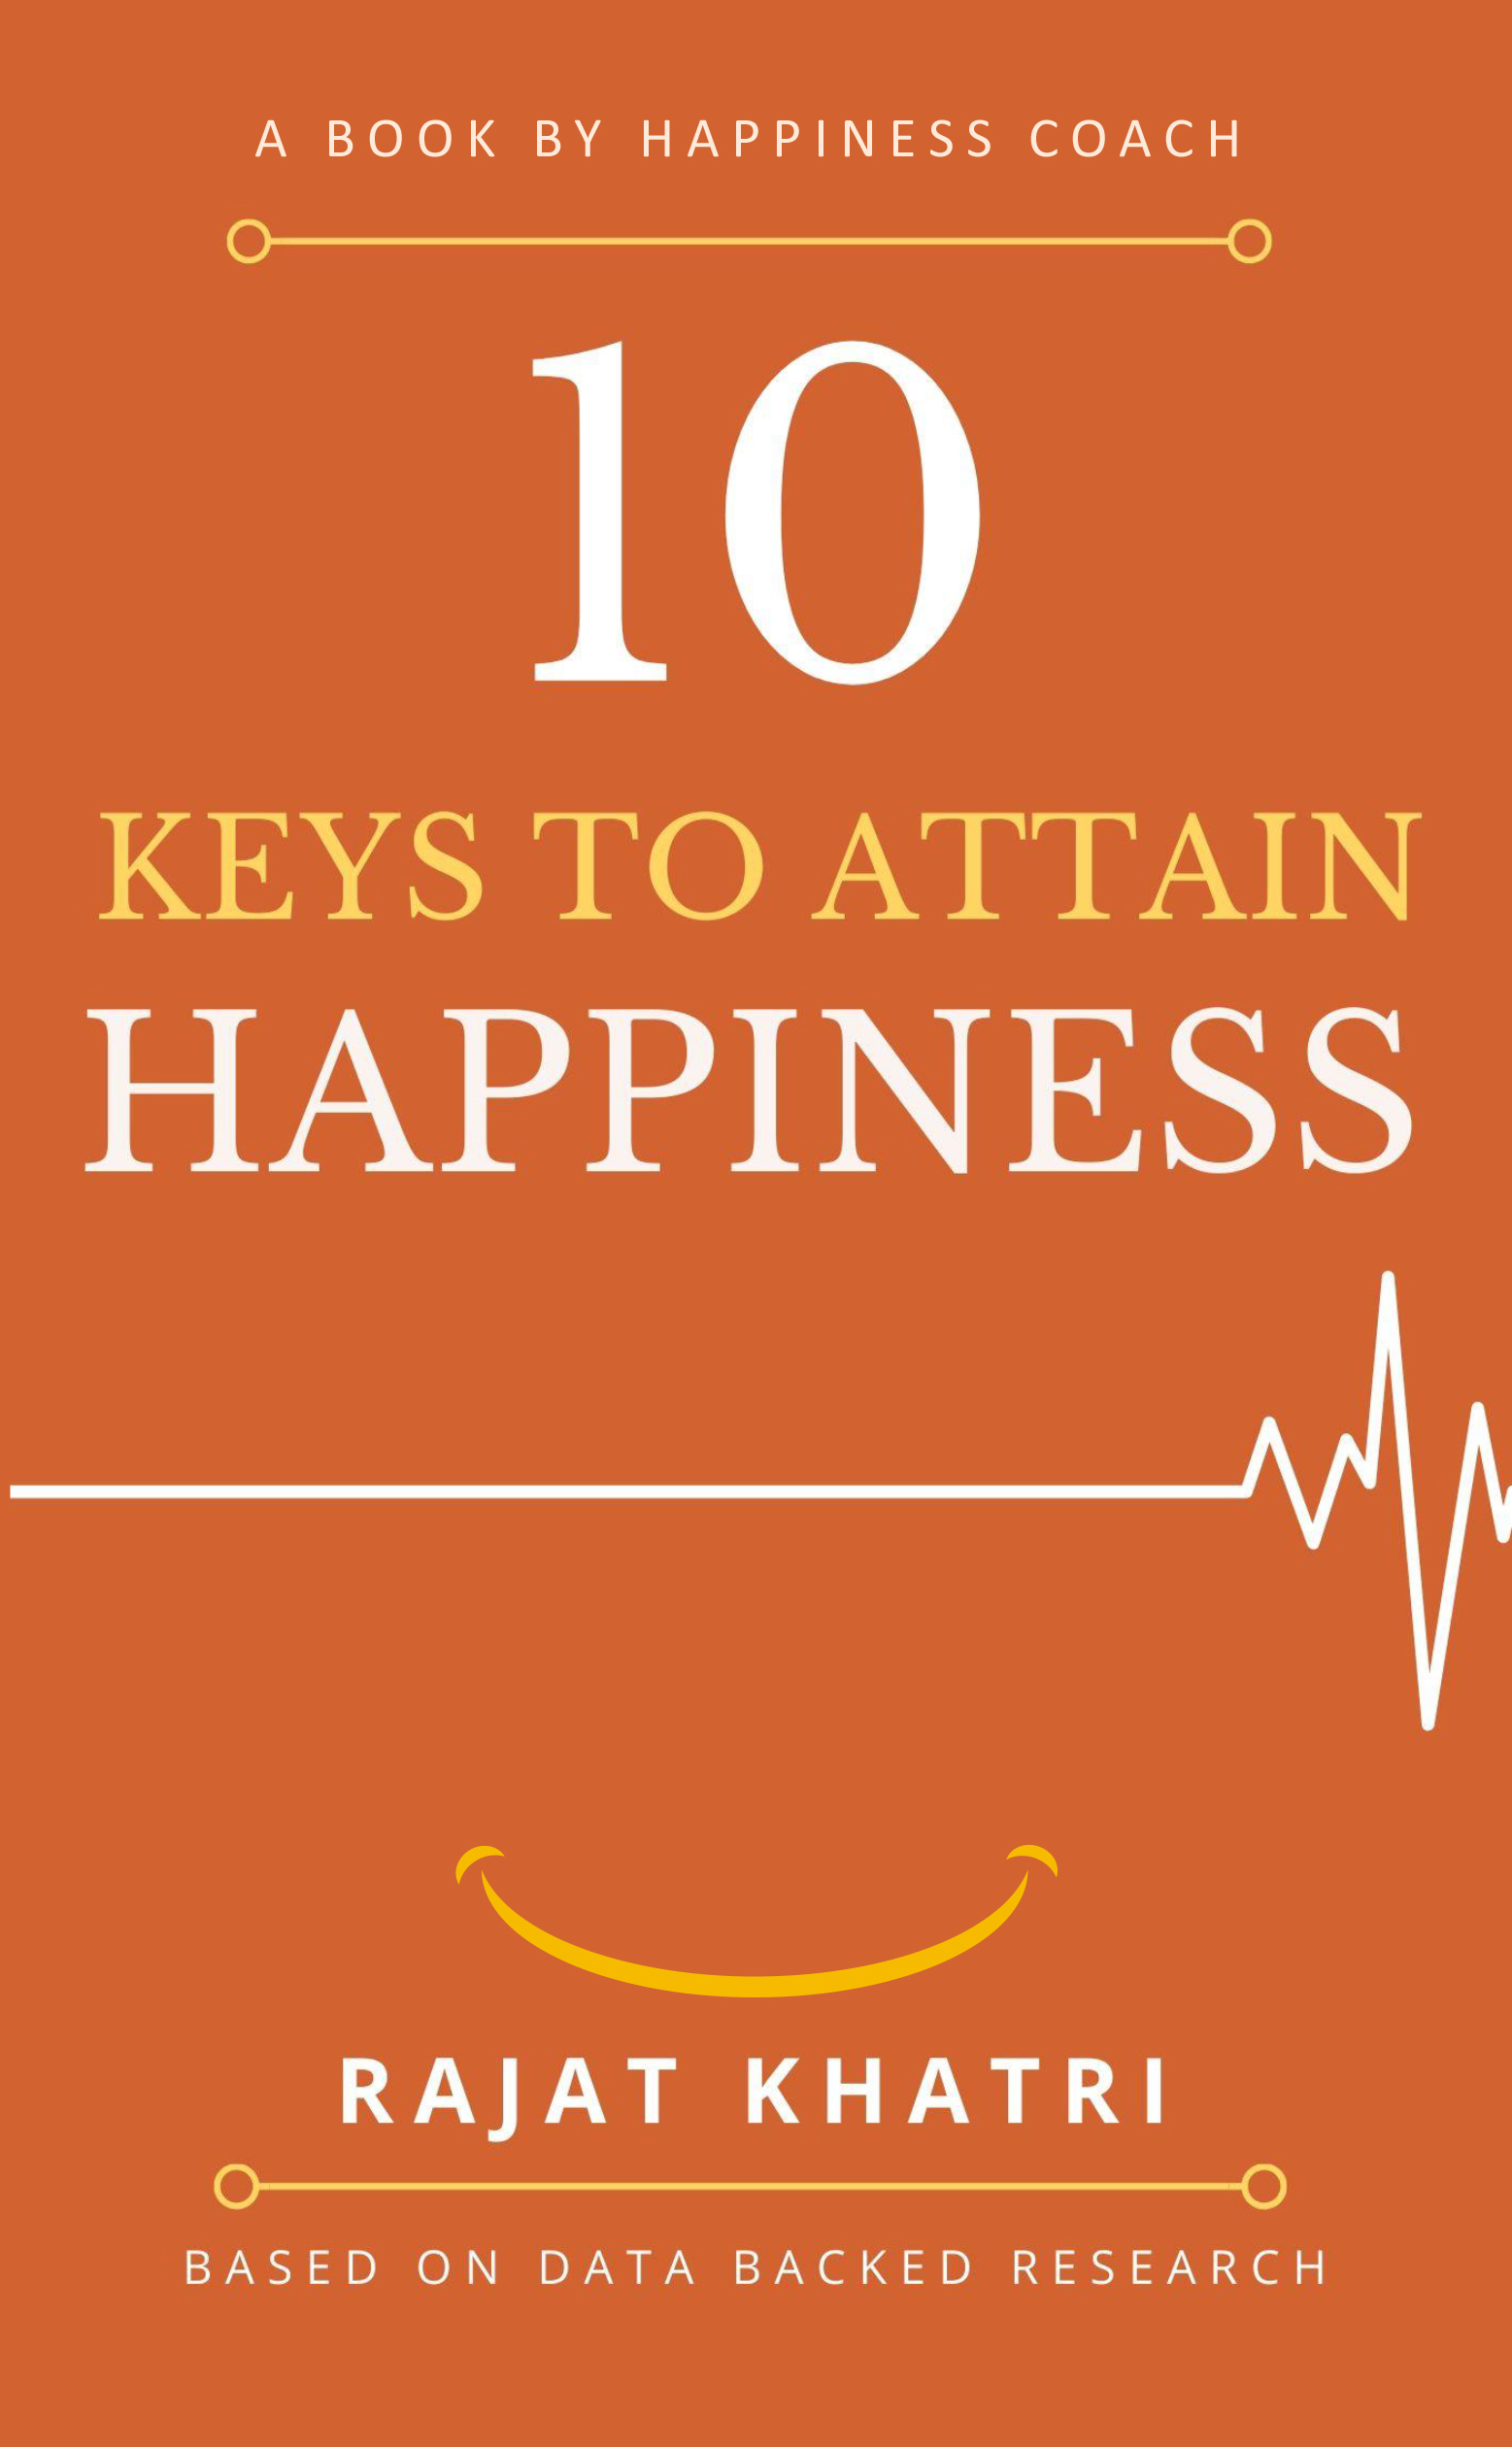 10 Keys to Attain Happiness